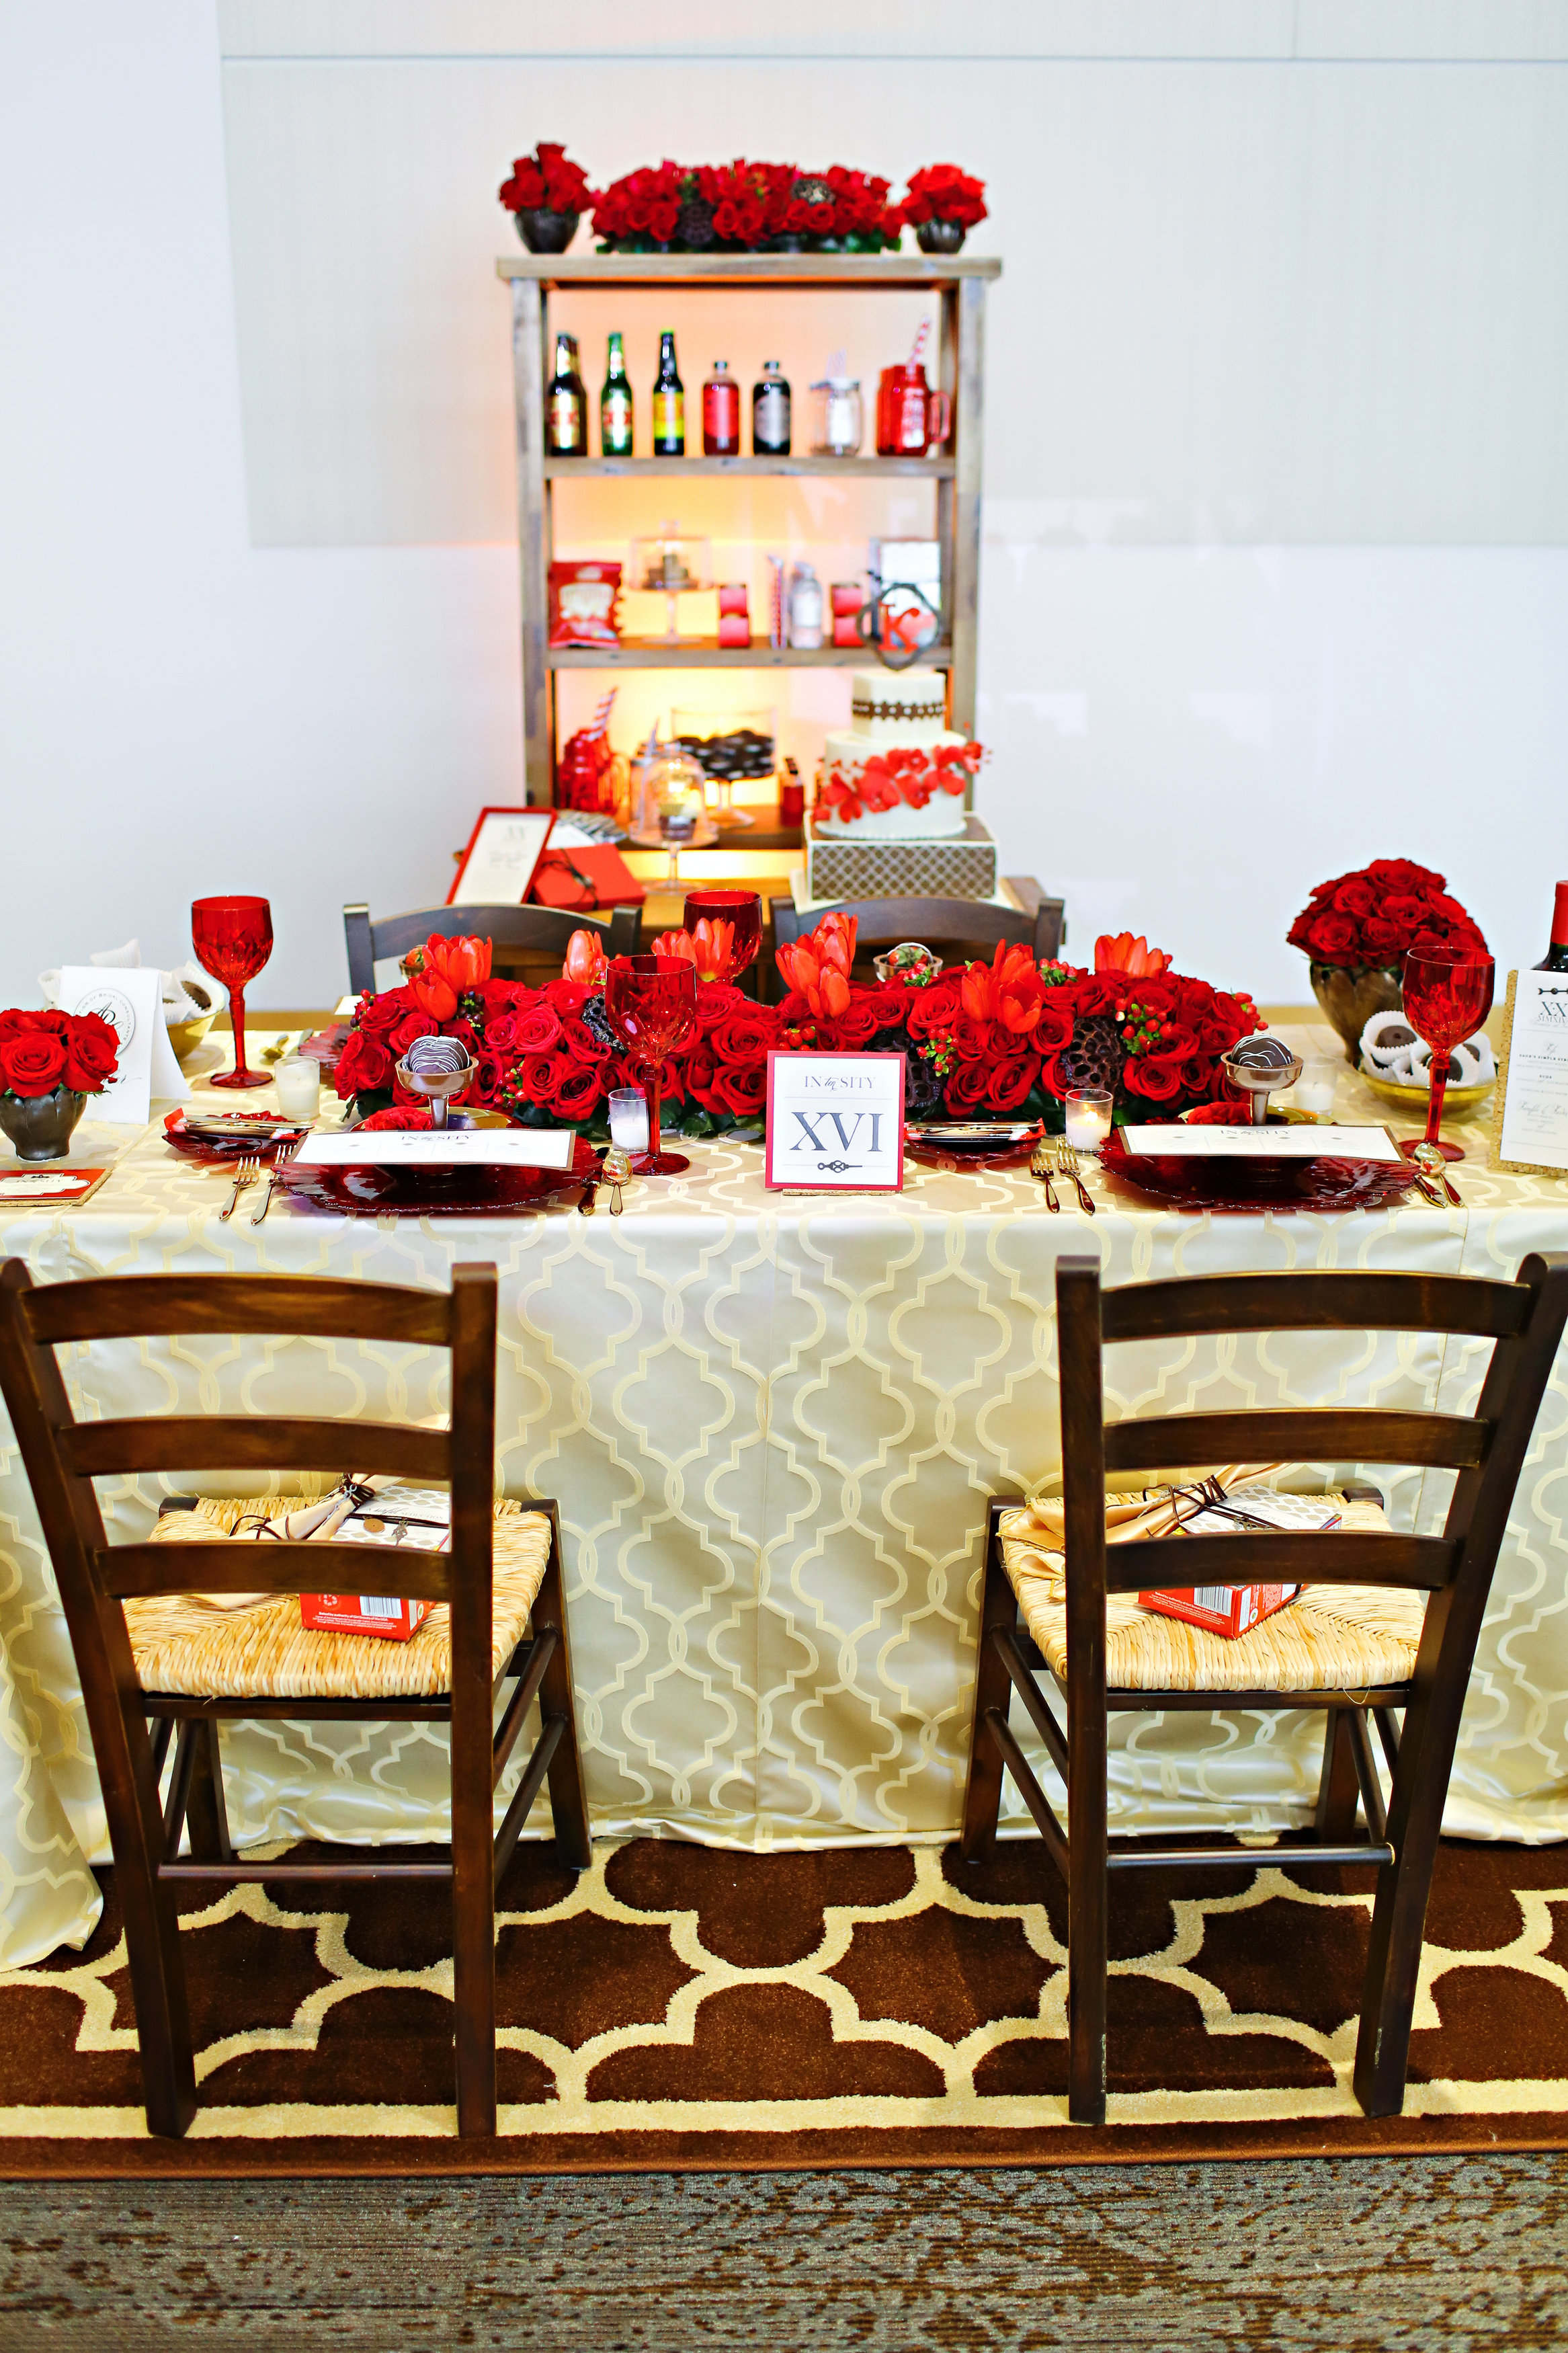 Art of the Table - Mon Amie Events Inc luxury wedding planner